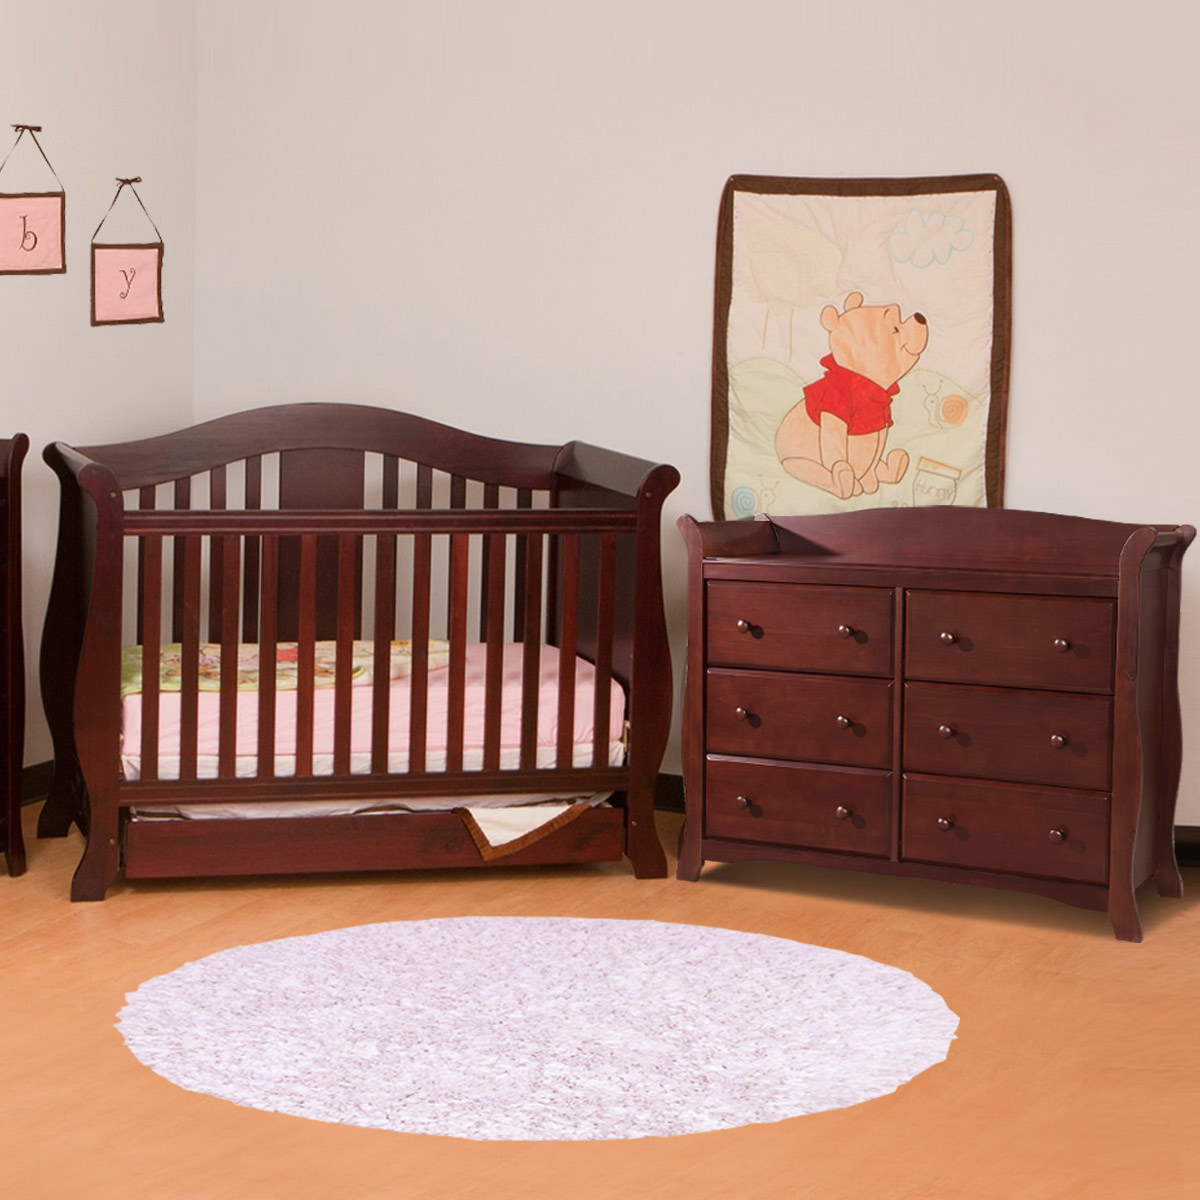 Storkcraft 2 Piece Nursery Set - Vittoria Convertible Crib and Avalon 5 Drawer Dresser in Cherry FREE SHIPPING & Storkcraft 2 Piece Nursery Set - Vittoria Convertible Crib and ...